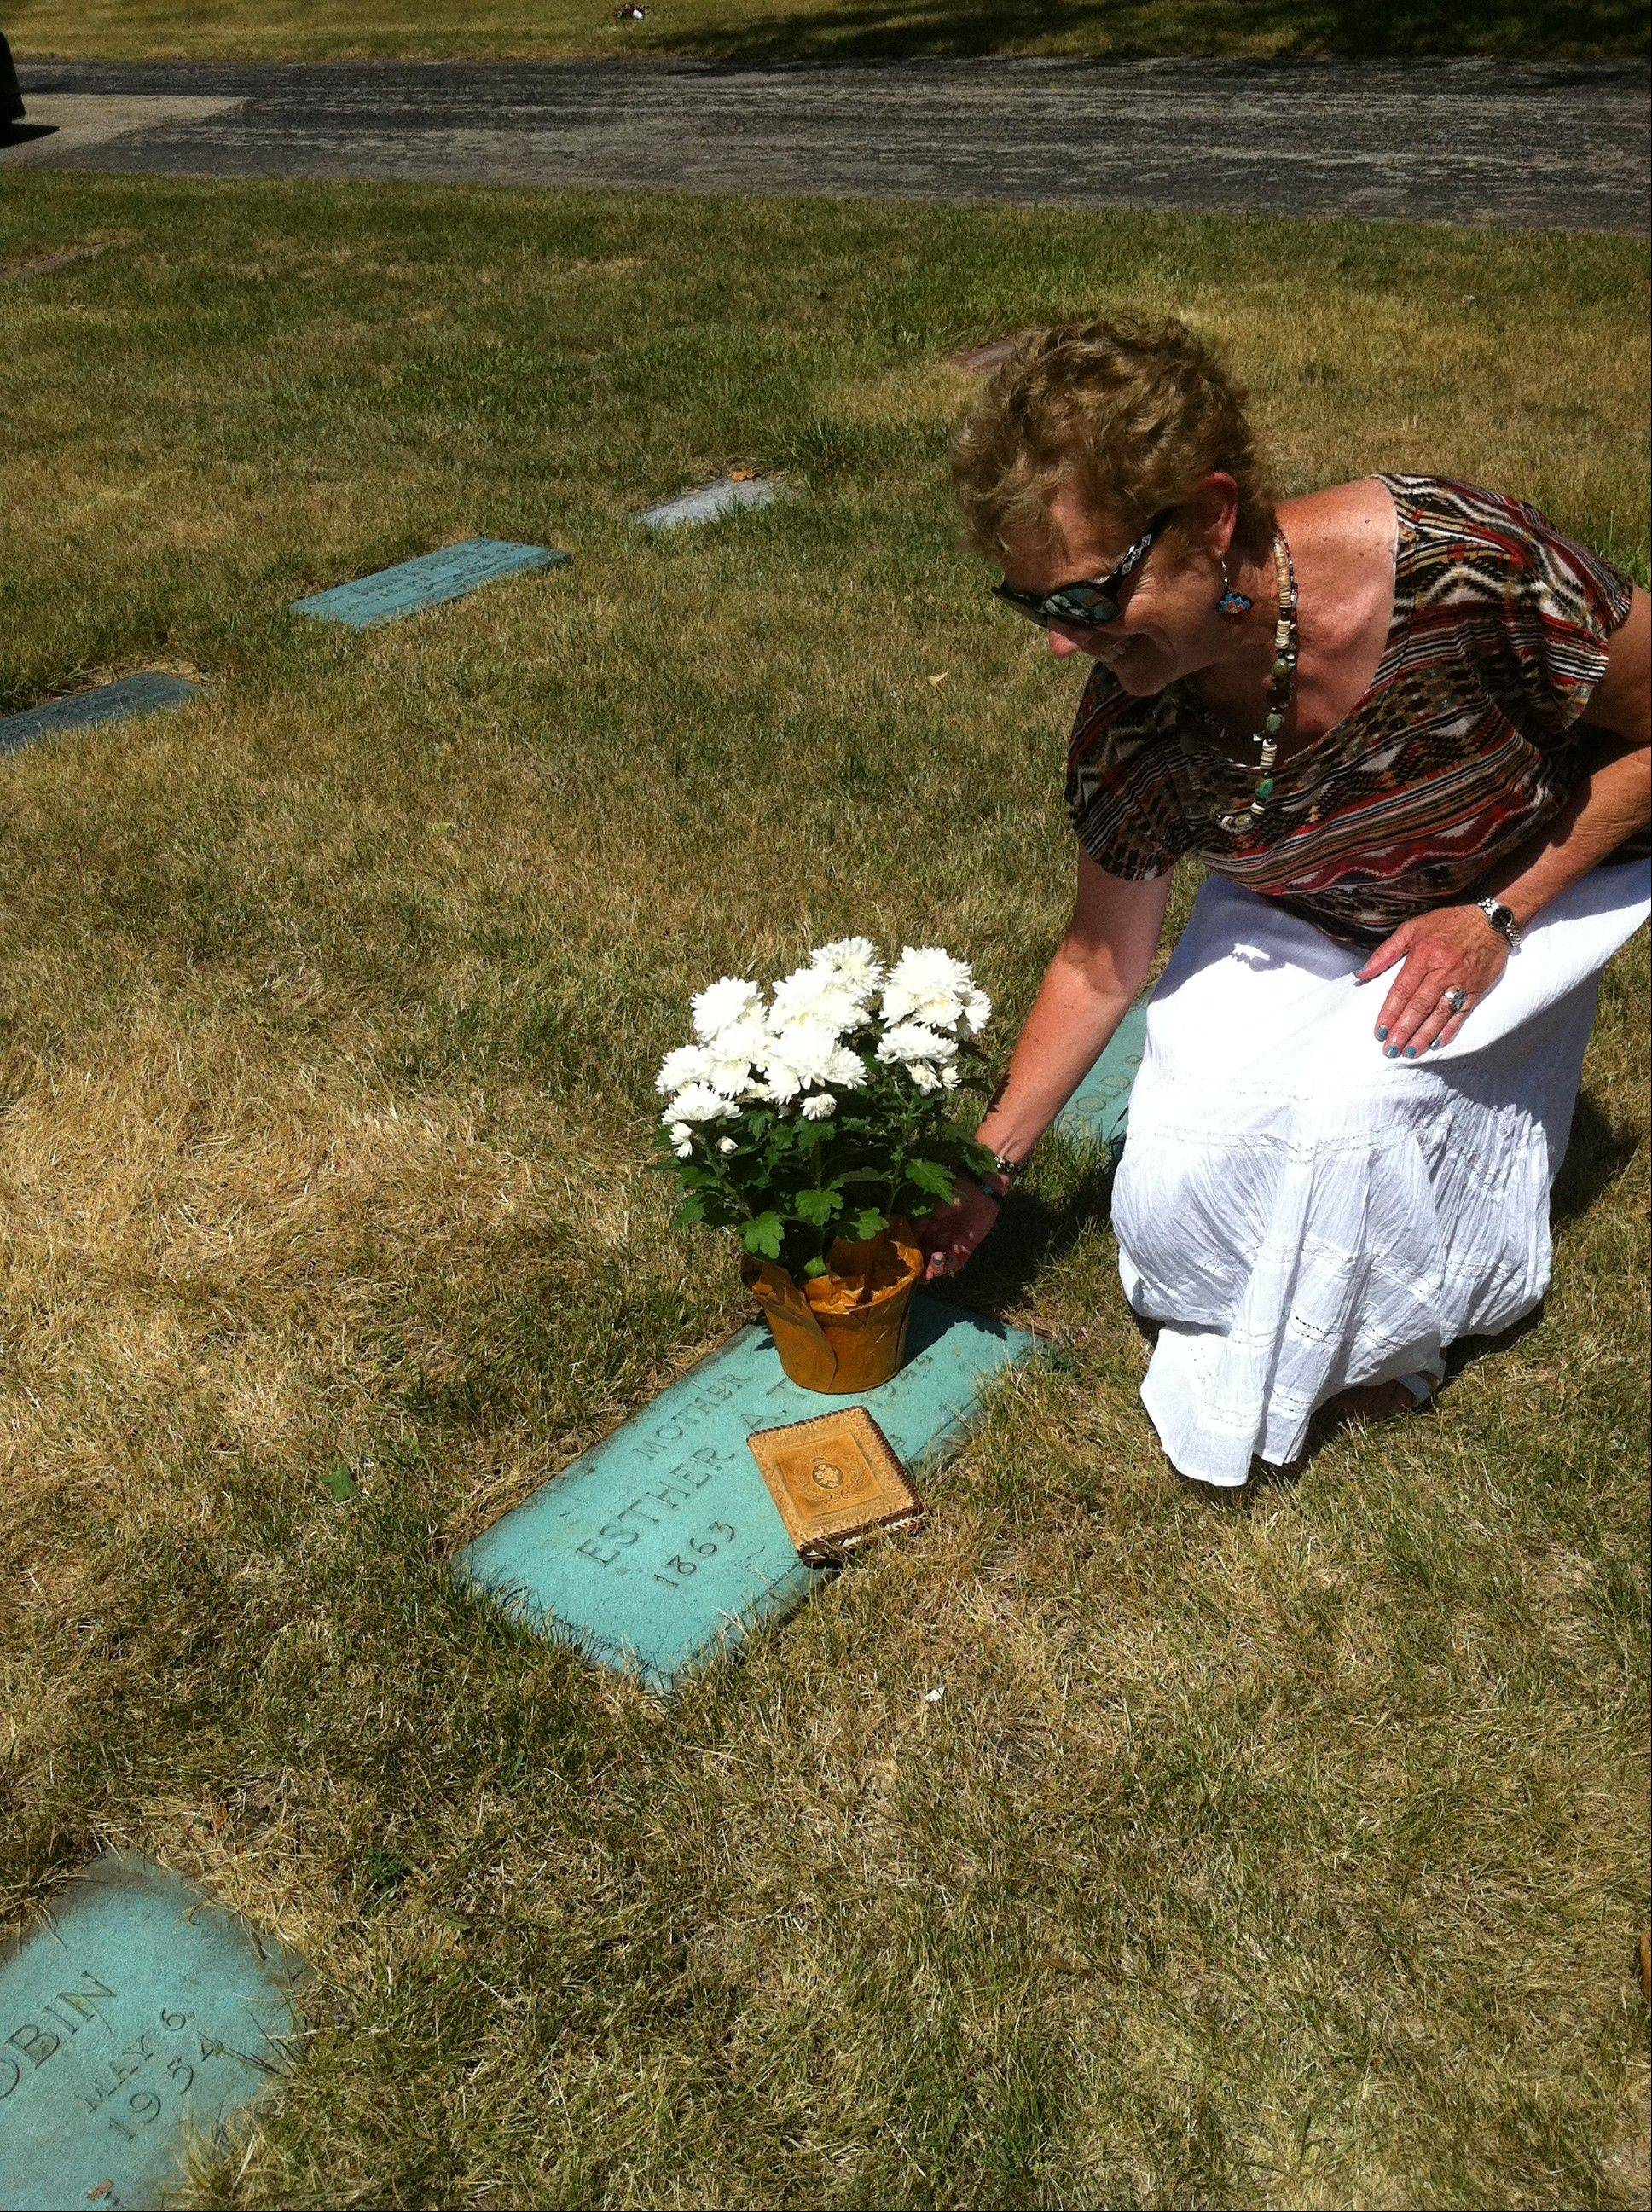 Barbara Tobin led a delegation of Baha'is to Nettie Tobin's gravesite, in Des Plaines, to say prayers and lay flowers for the 100th anniversary.